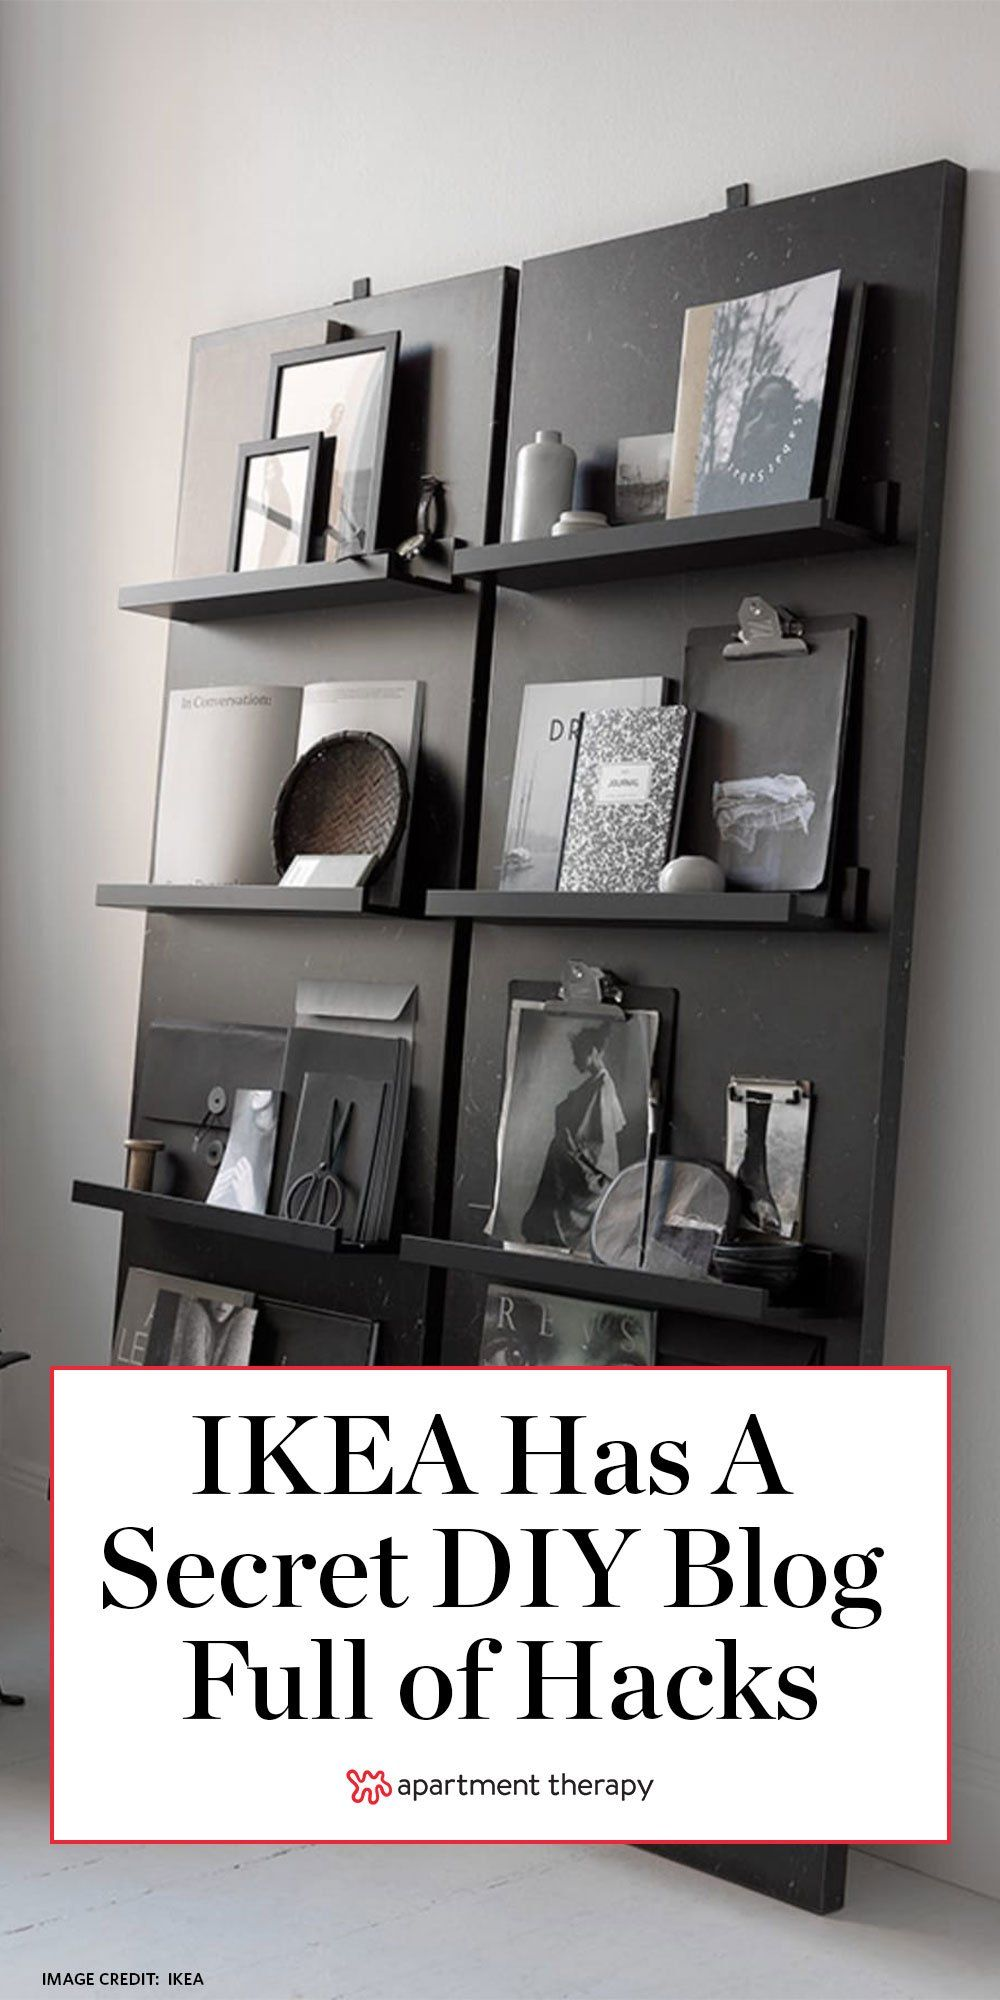 "Photo of IKEA Has a ""Secret"" Blog Devoted to Hacks, and It's a DIY Dream"